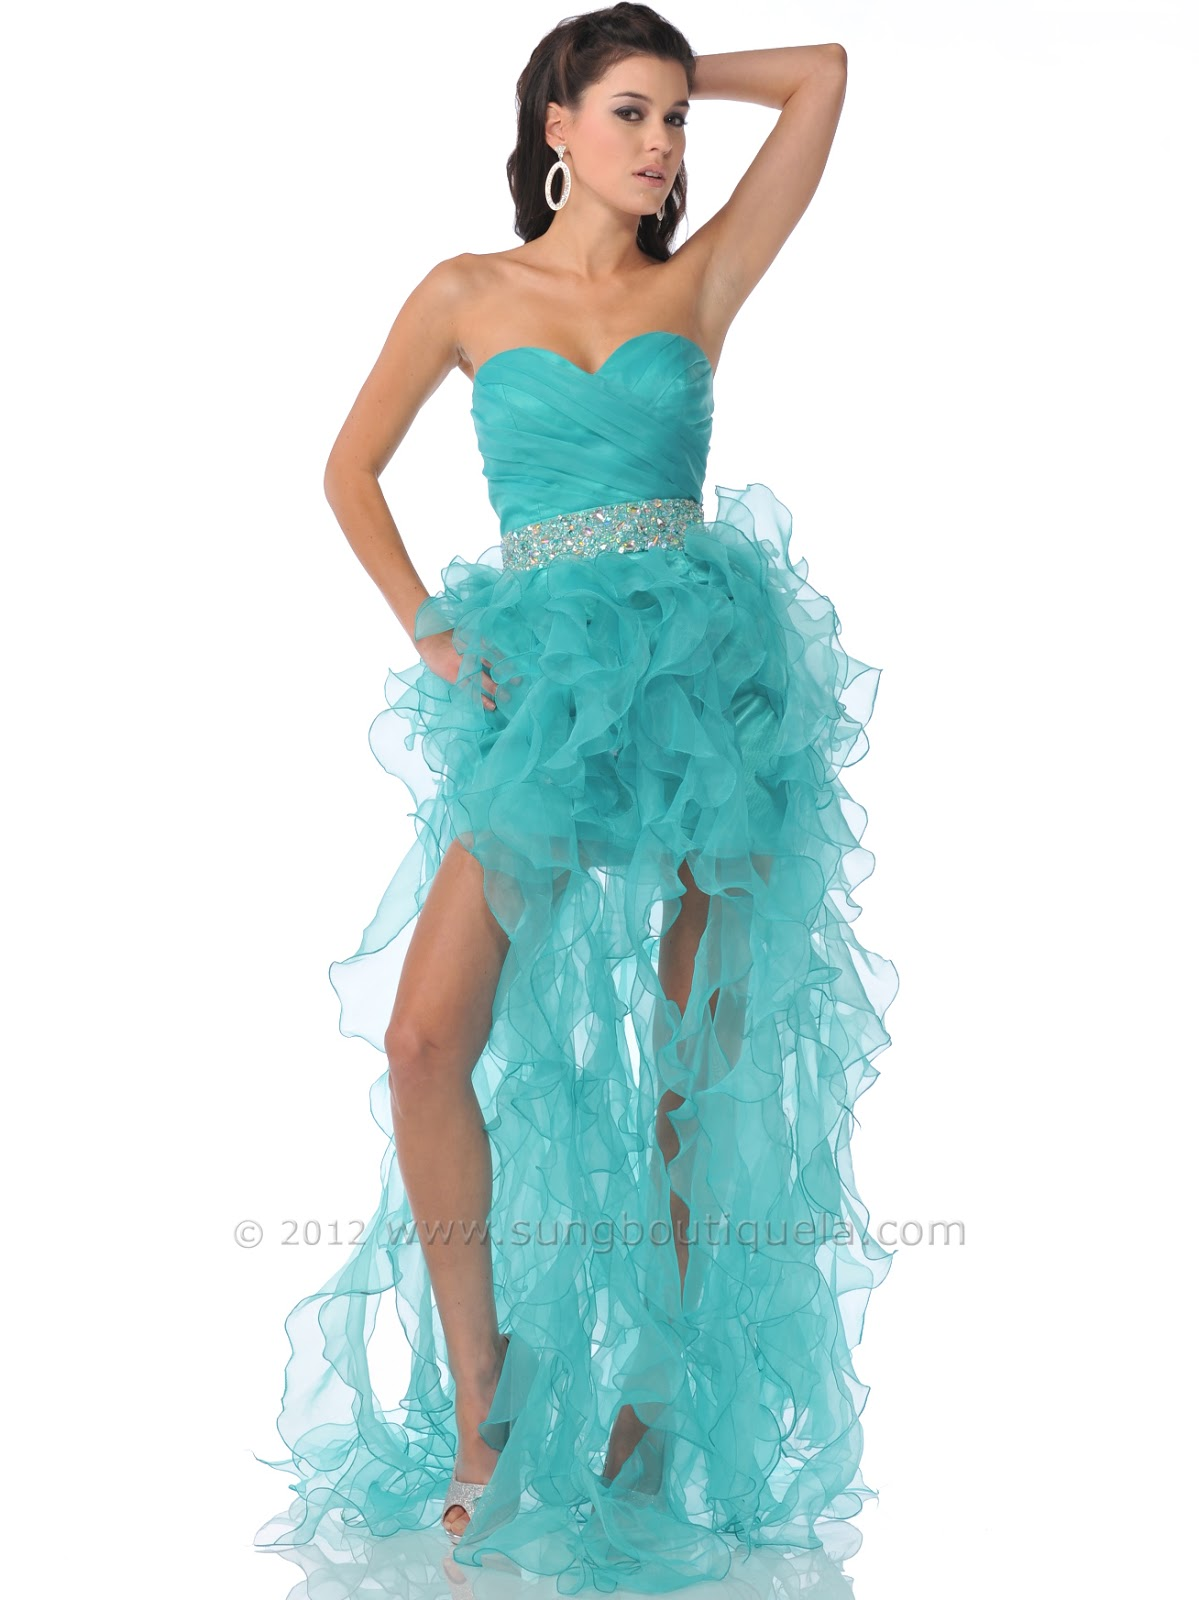 Prom Dresses Archives - Page 277 of 515 - Holiday Dresses